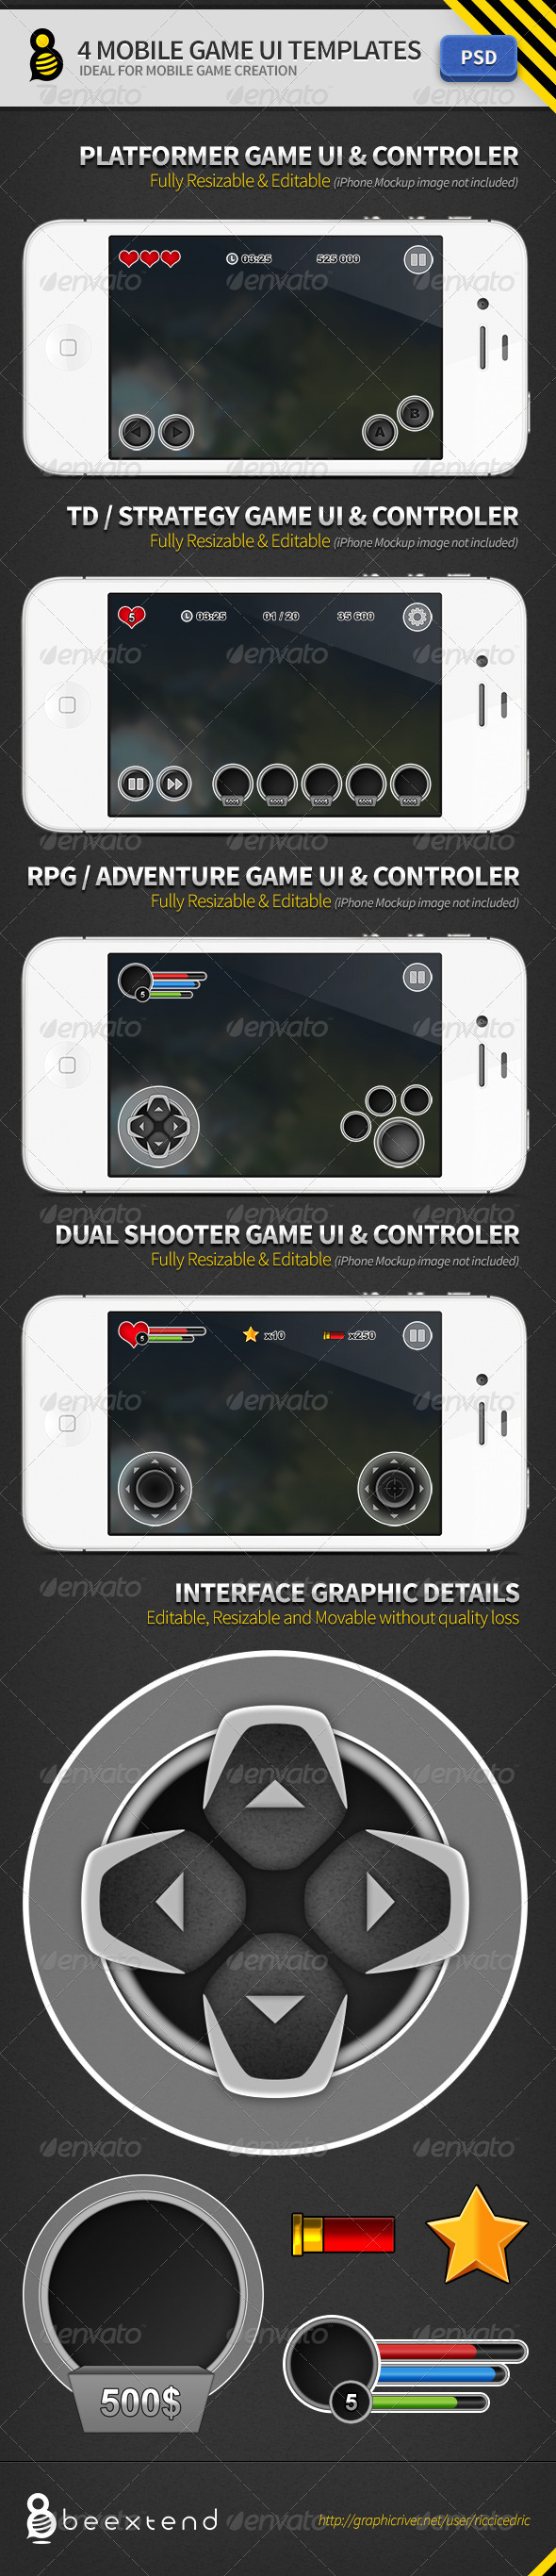 GraphicRiver 4 Mobile Game UI Templates 2810816